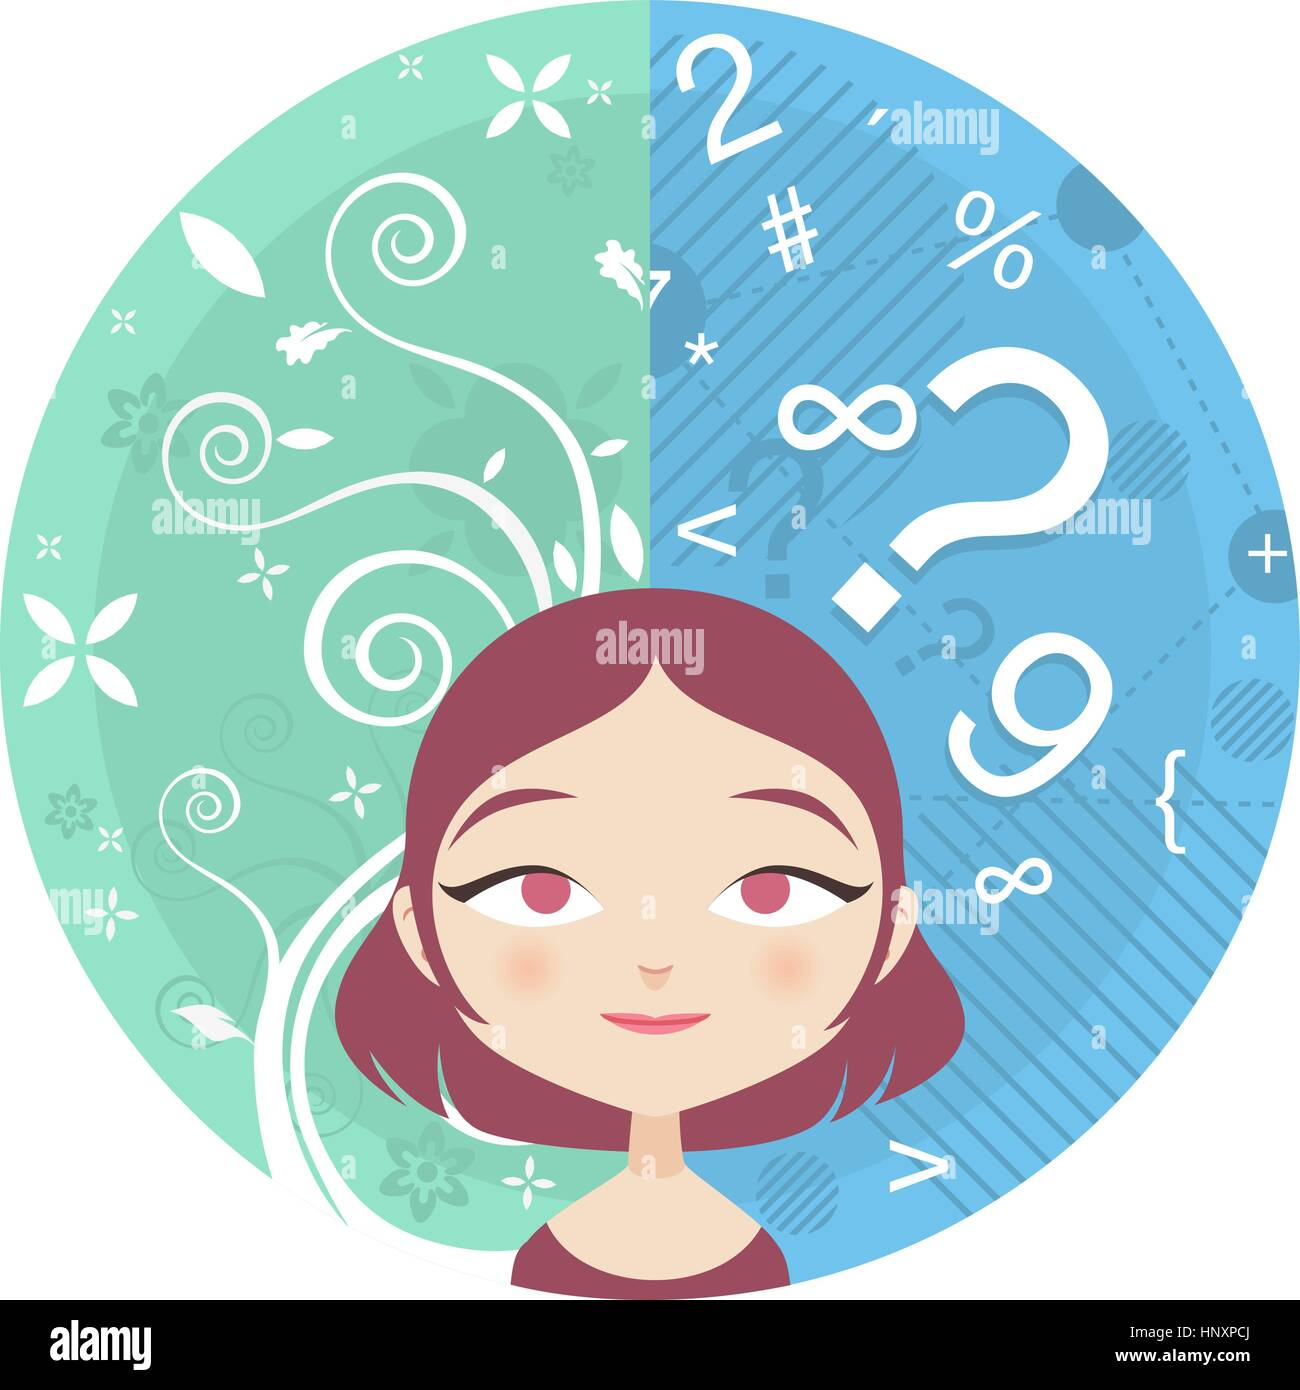 Vector illustartion of the Left and Right Brain sides of a young woman - Stock Image